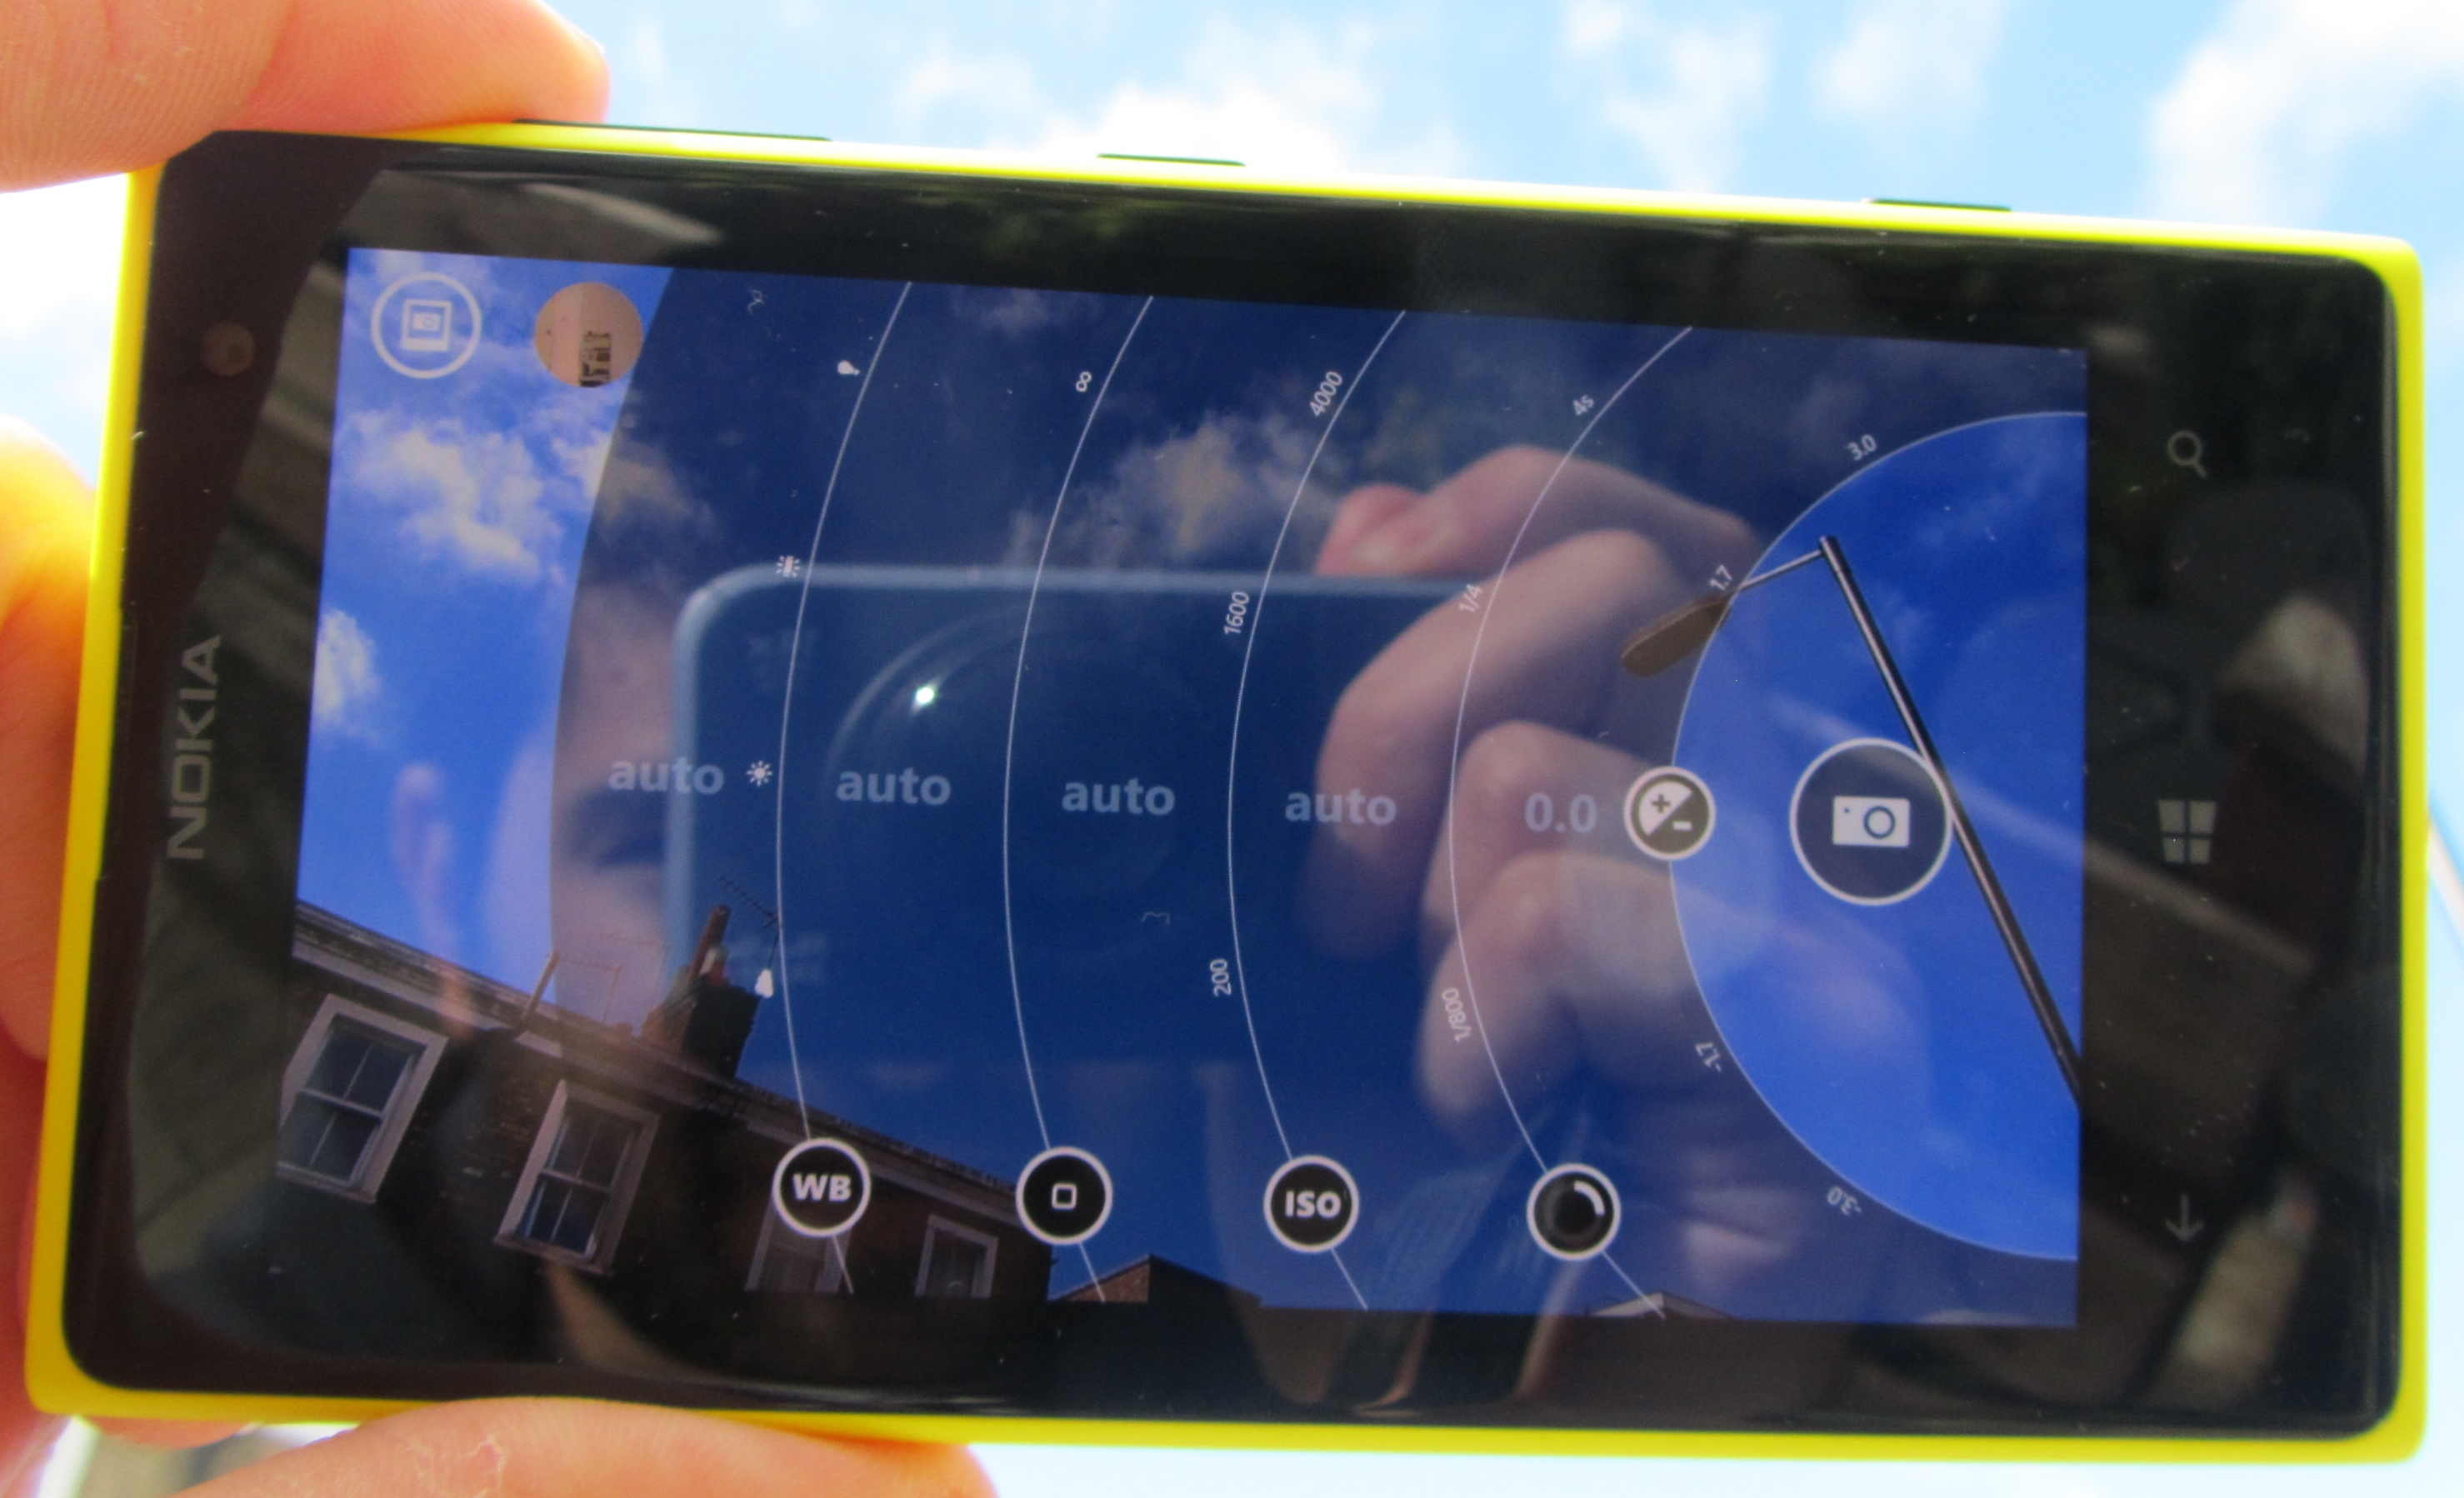 1020 Pro mode Nokia Lumia 1020 review: The best camera phone, but not the best smartphone